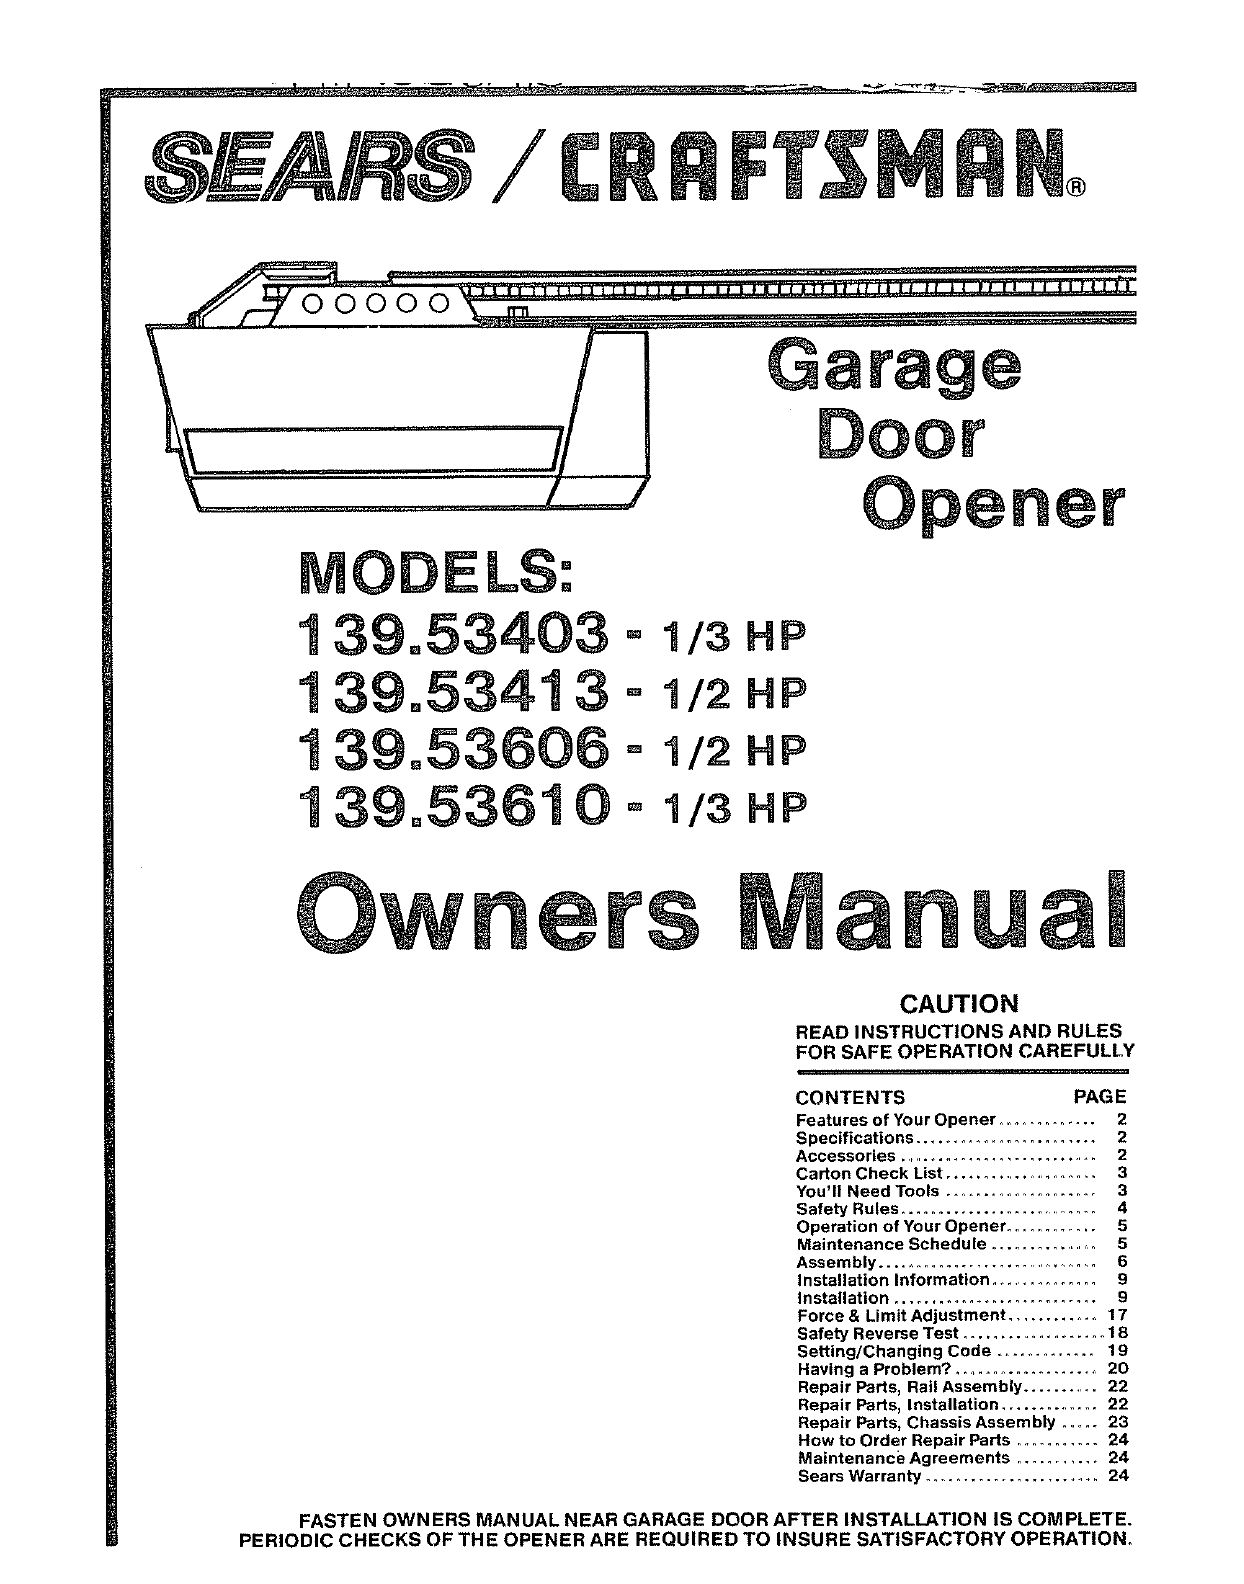 Craftsman 1 2 hp garage door opener wiring diagram regarding craftsman 1 2 hp garage door opener wiring diagram regarding motivate asfbconference2016